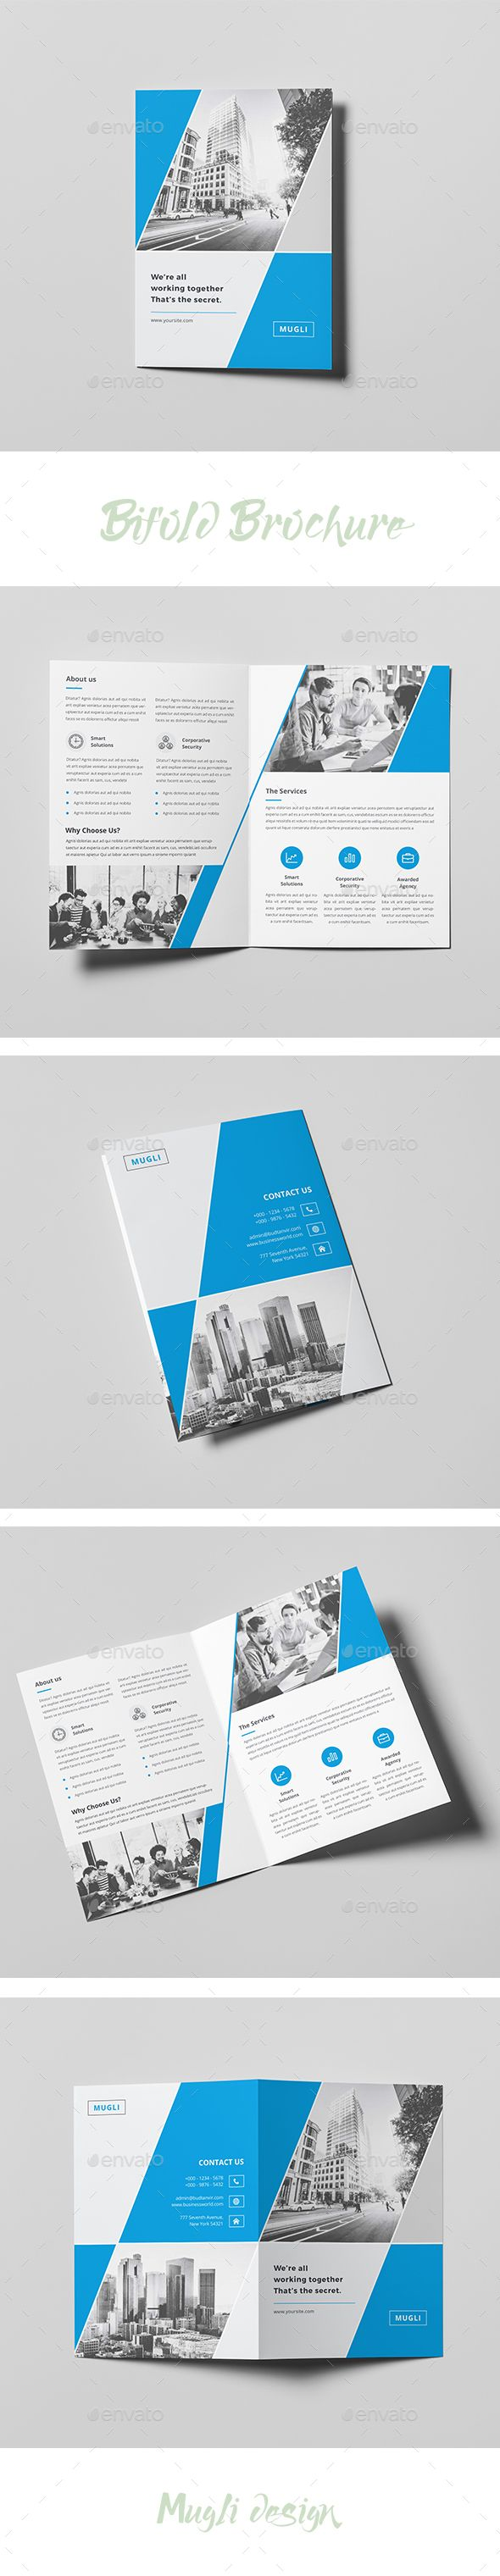 Bifold Brochure Template InDesign INDD